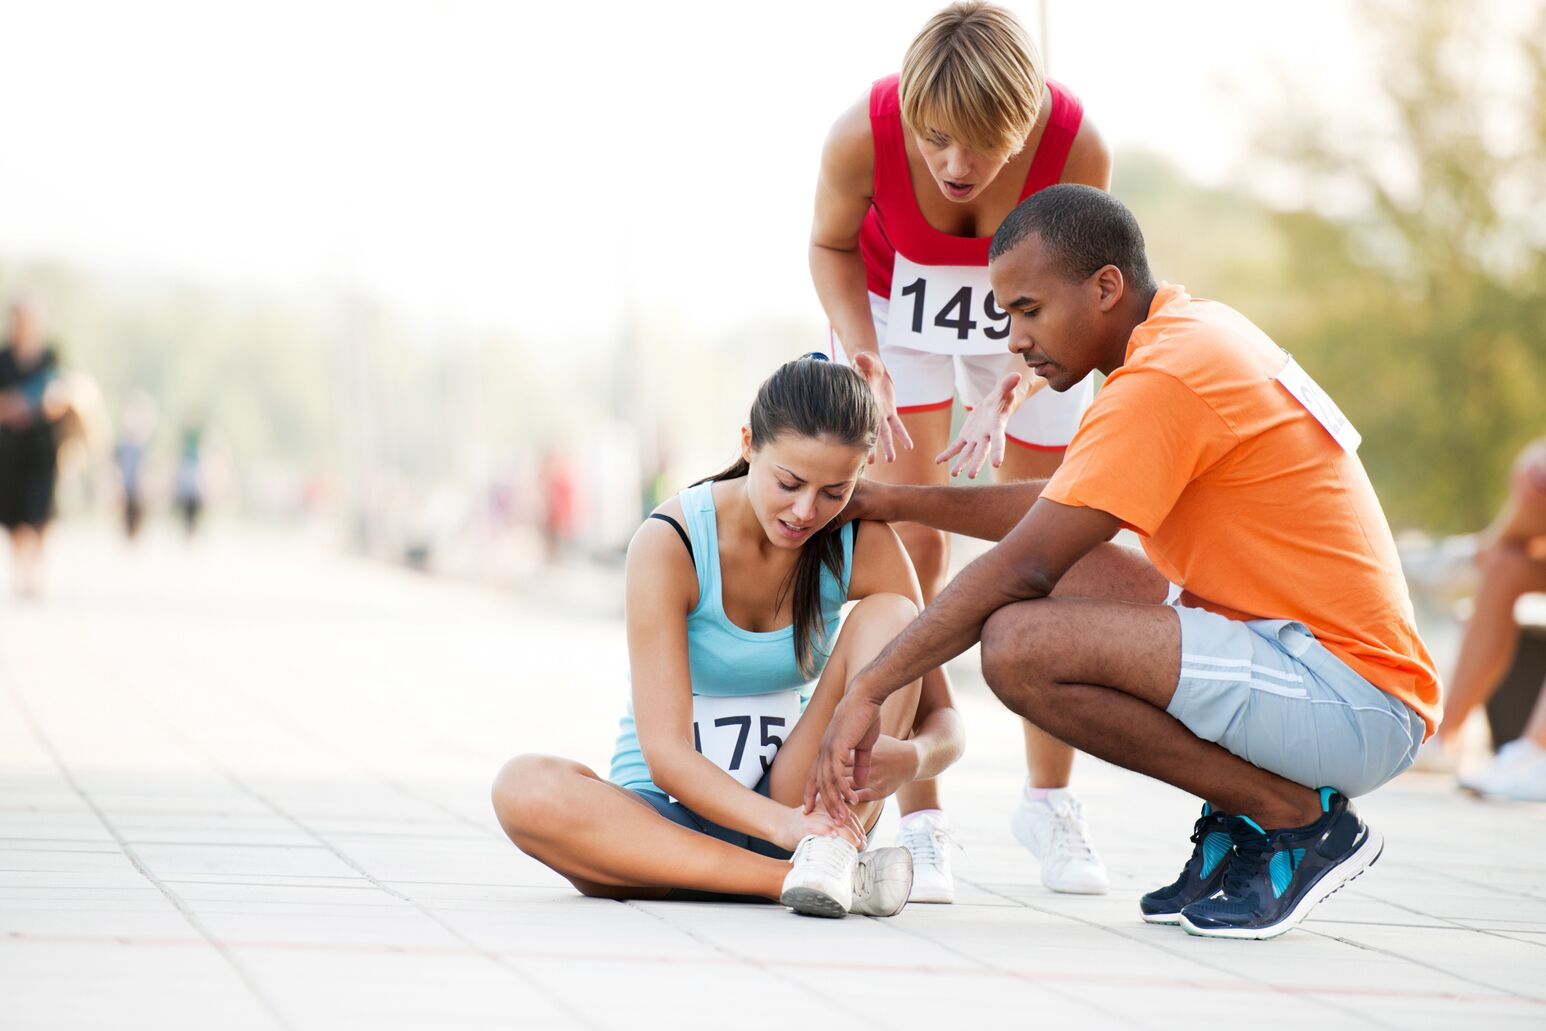 A female runner holds her ankle in pain with a black man and middle-aged woman looking to assist. Adam Bitterman, MD, highlights five ways you can prevent foot and ankle injuries.